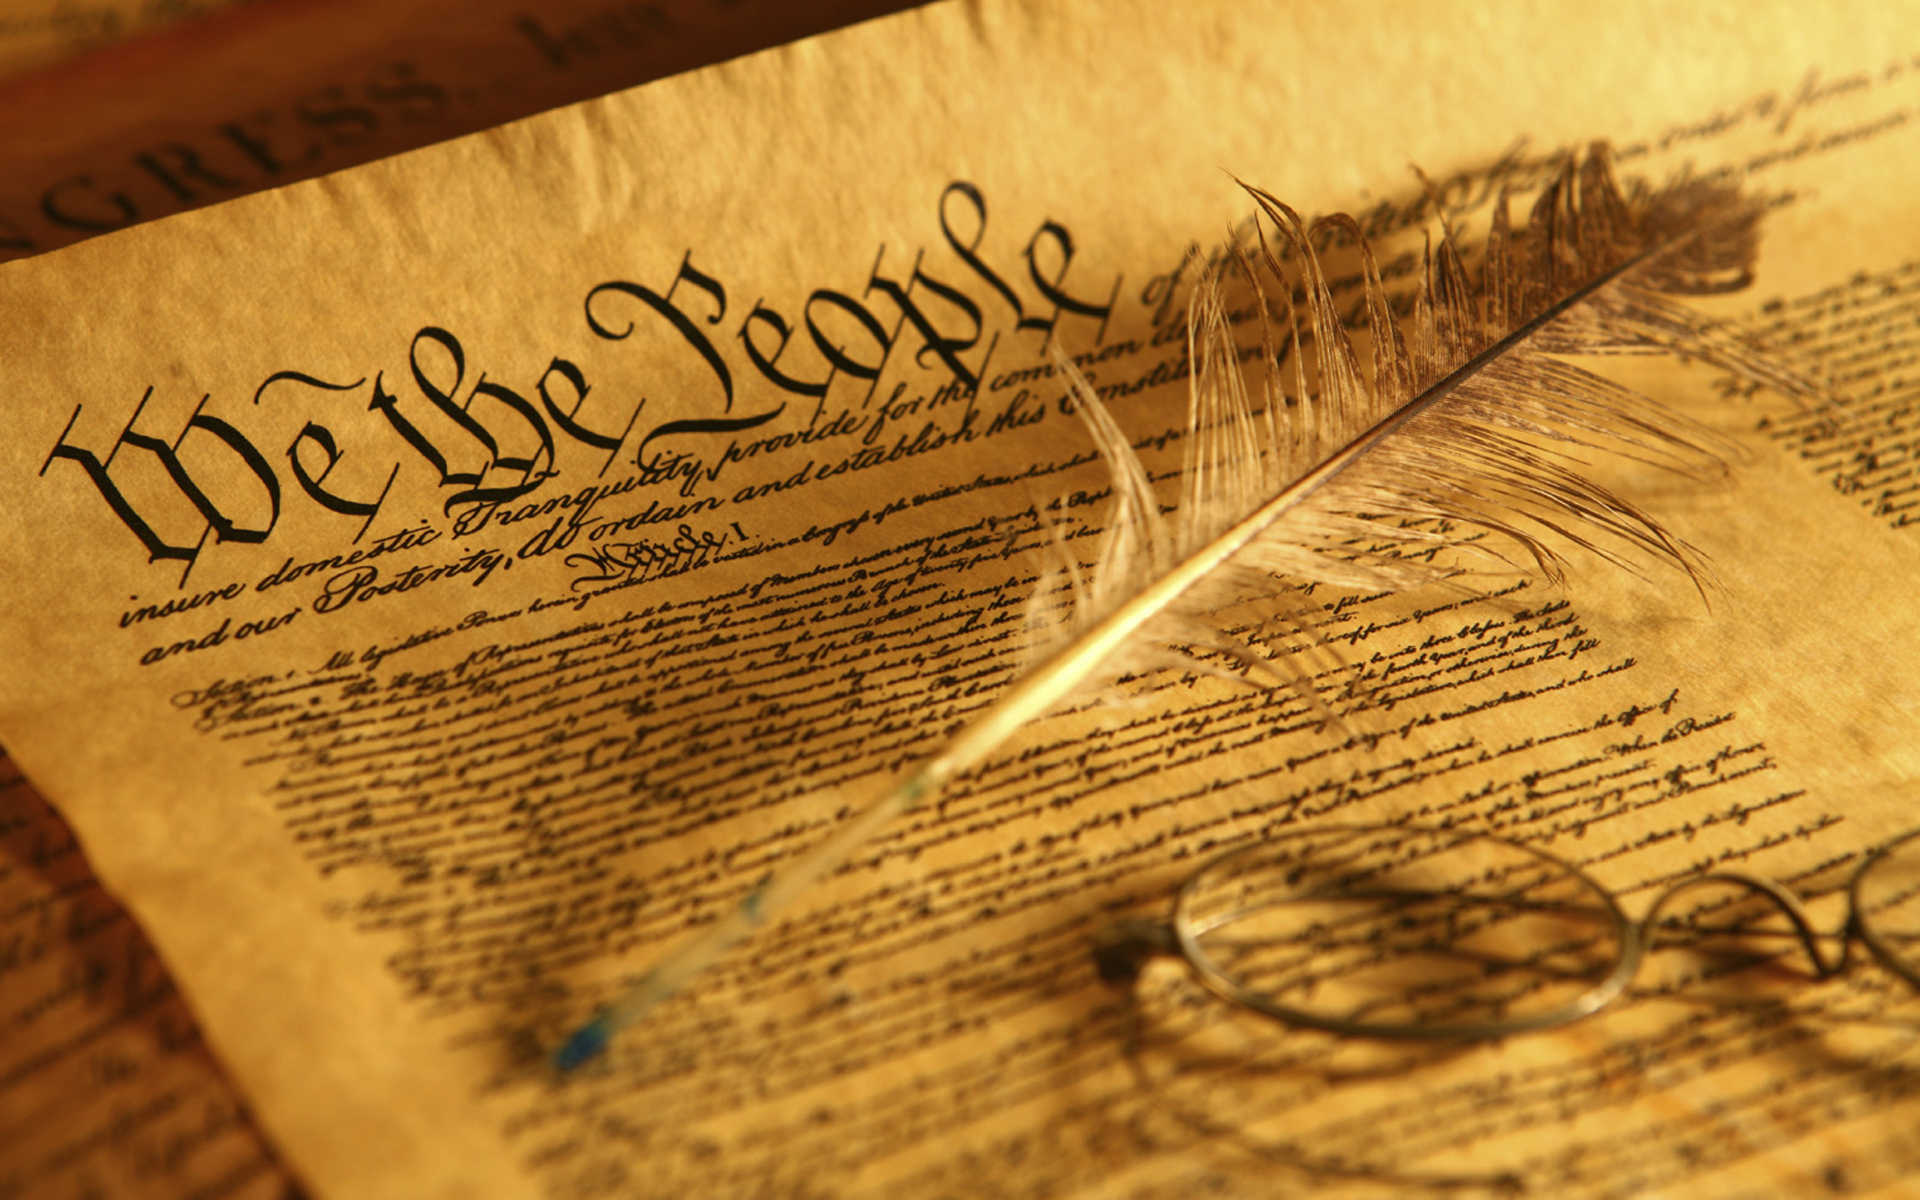 the constitution and bill of rights: a history